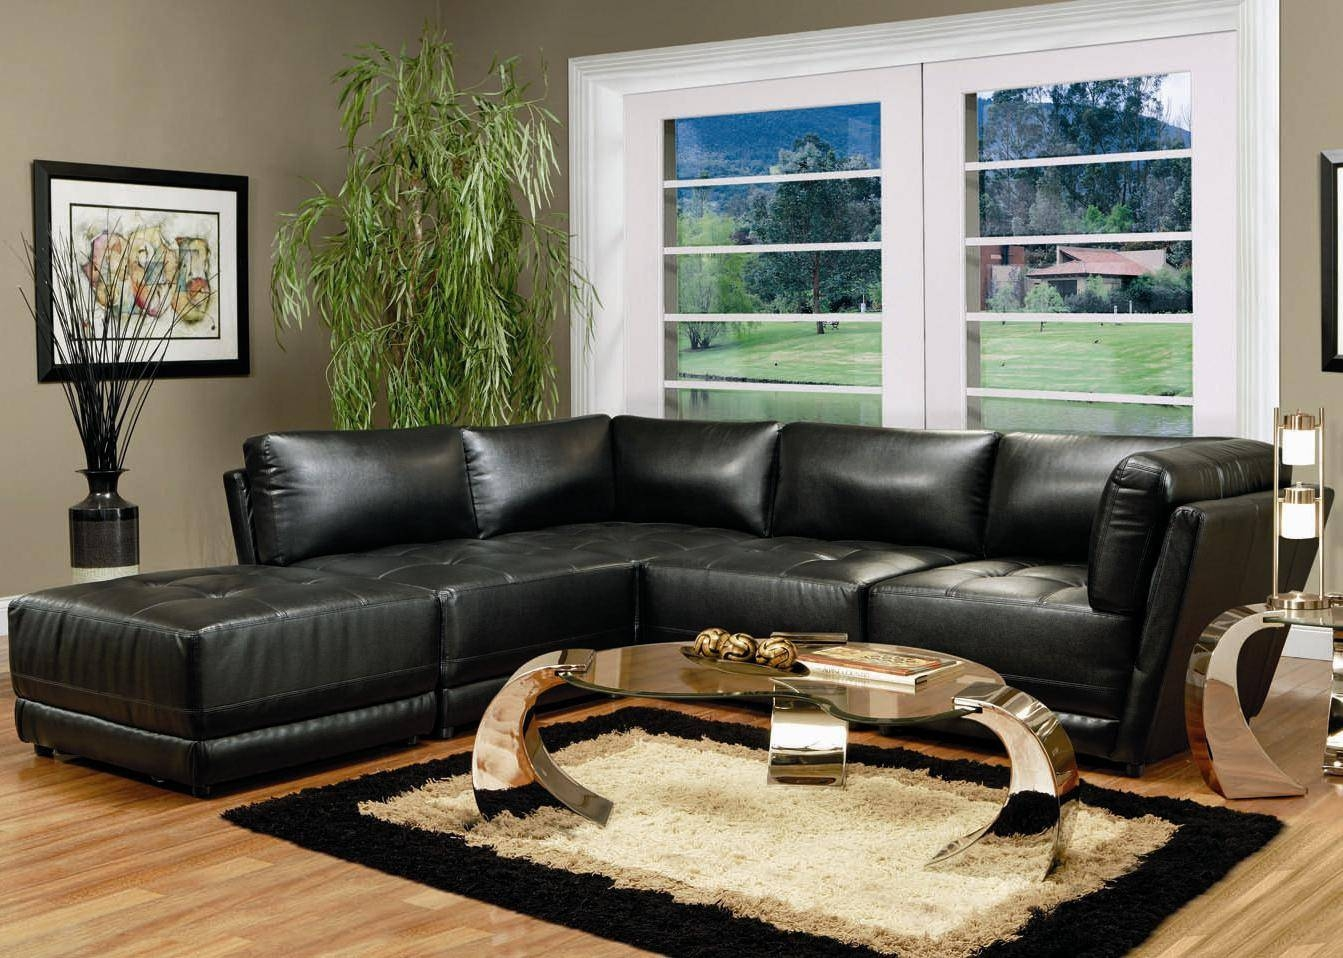 Modern Black Leather Modular Sofa within Leather Modular Sectional Sofas (Image 21 of 30)